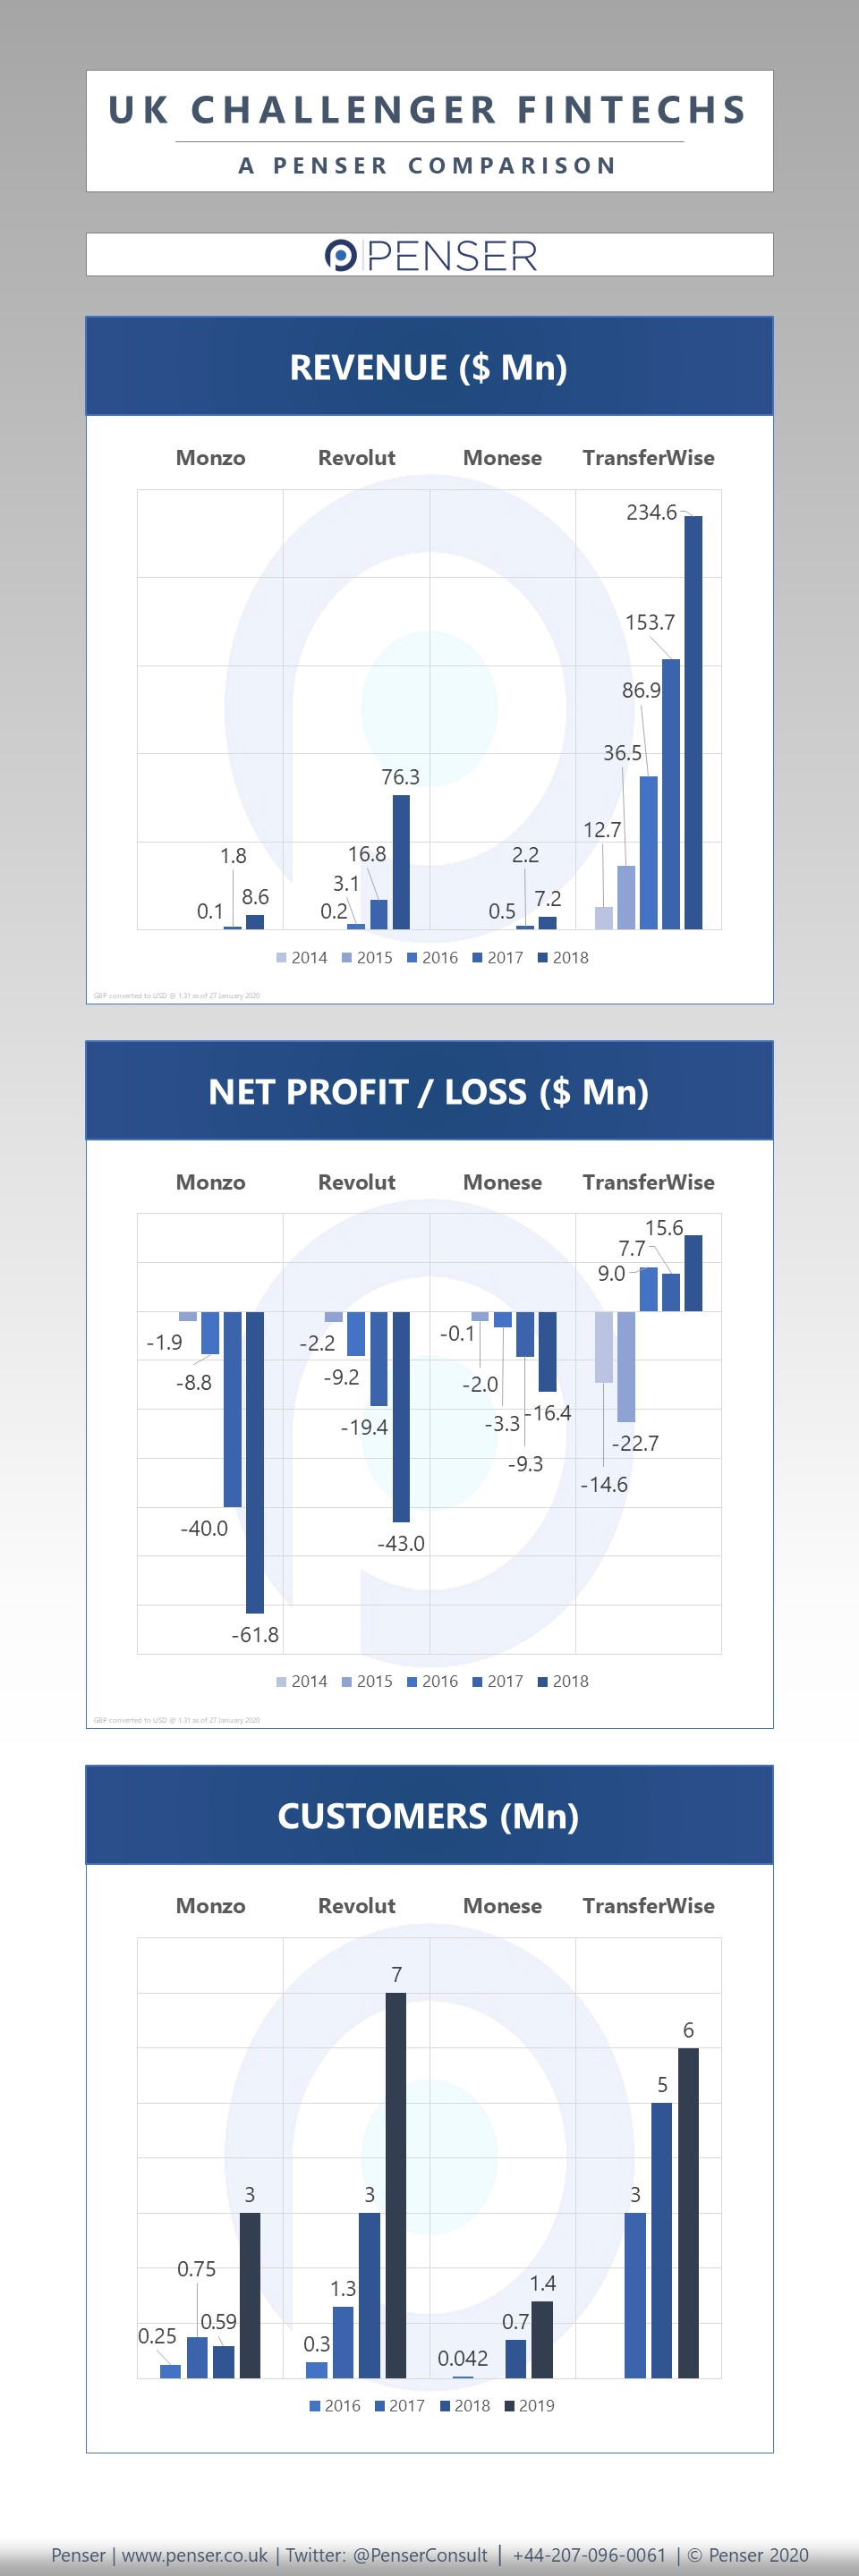 Penser takes a look at UK Challenger fintechs' Revenues, Net Profit/Loss and Customers